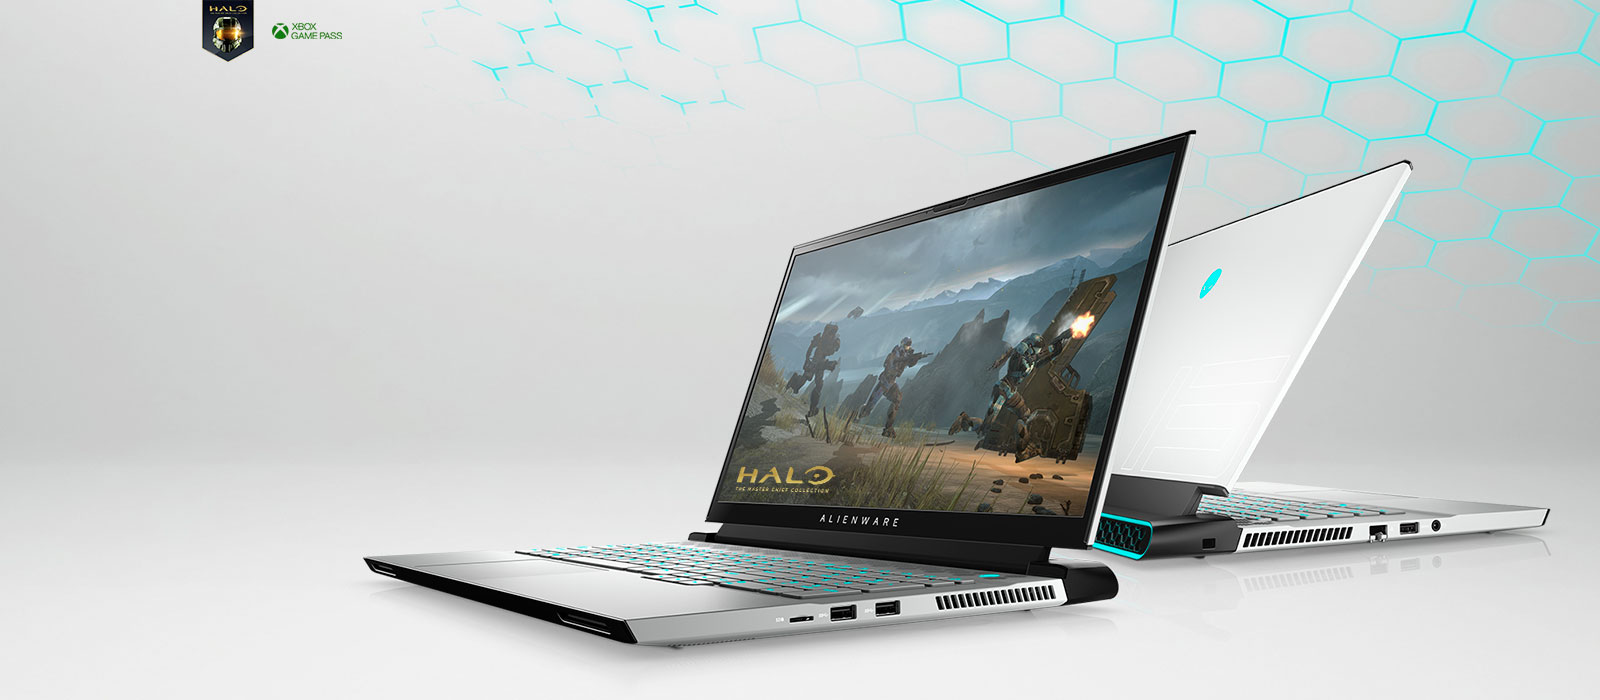 21800-home-notebook-alienware-m15-m17-r3-1600x700-v1-02-18.jpg